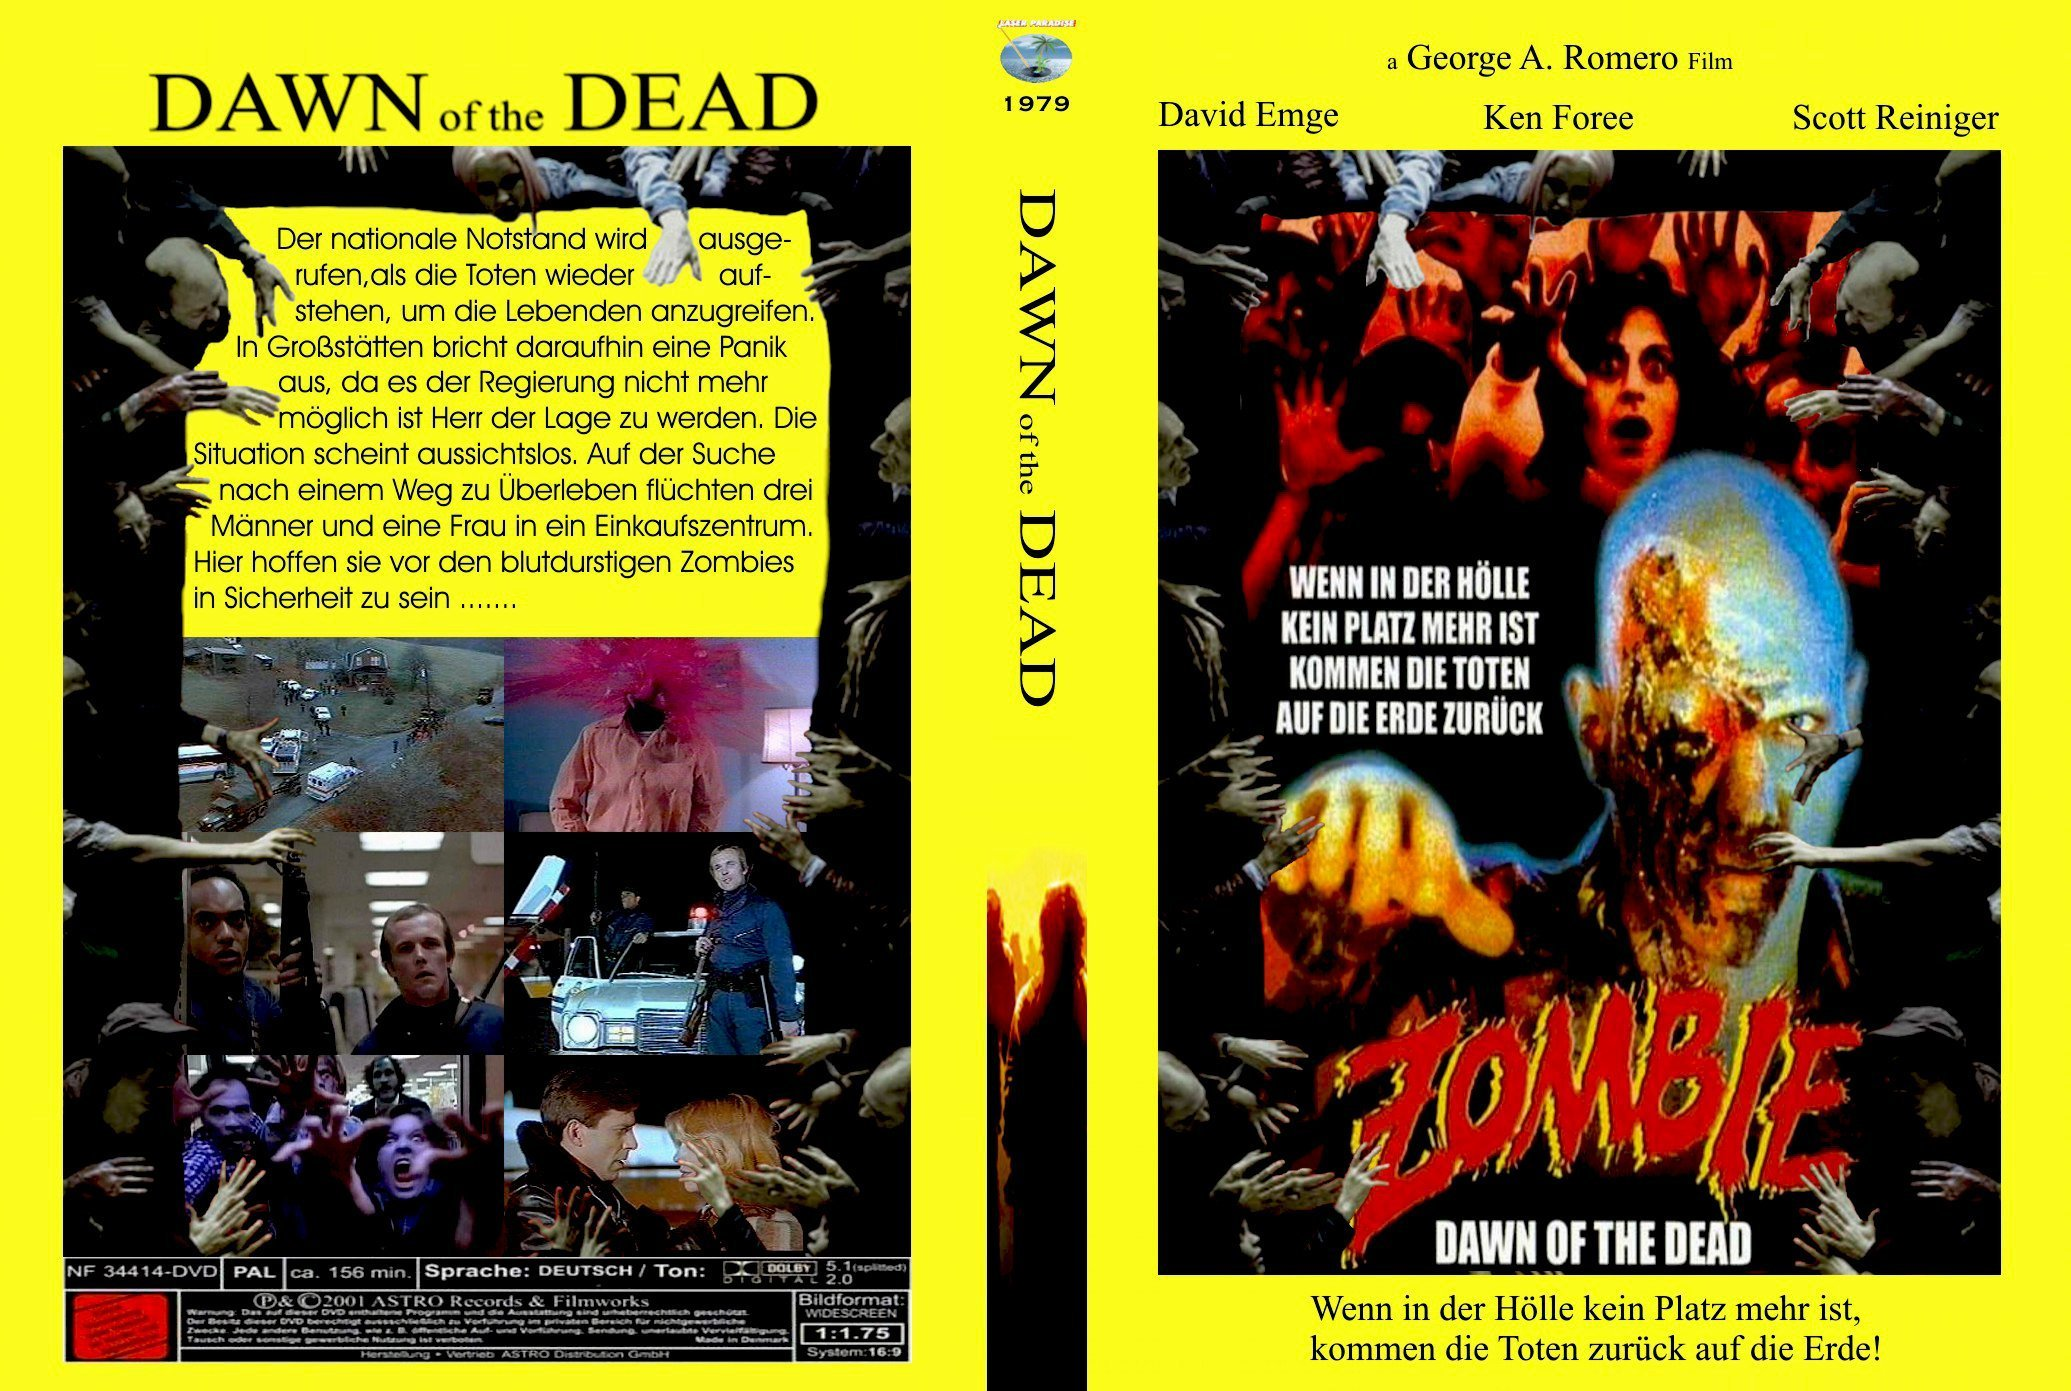 dawn of the evil symbolic dead essay Either jay and lauren were making a symbolic statement or both honestly thought human beings are inherently good they too were wrong and ended up as dead as the wannabe superhero from the bronx.